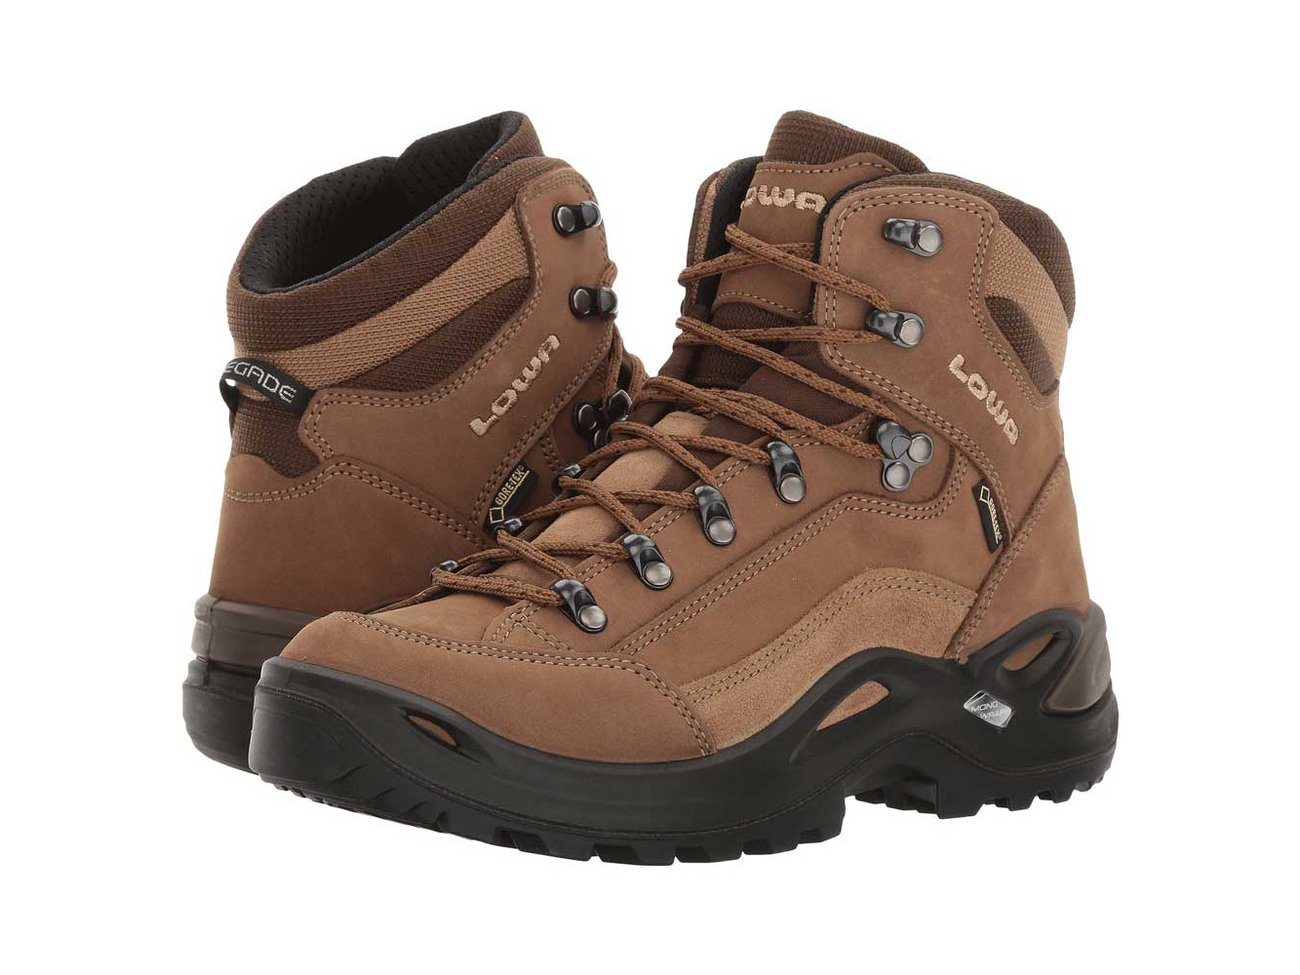 Hiking Boots and trail shoes are becoming much lighter weight. There's no doubt about it. We surveyed hundred of backpackers to find out what their favorite hiking boots and trail shoes and it's clear that the era of heavy leather hiking boots is on the wane.